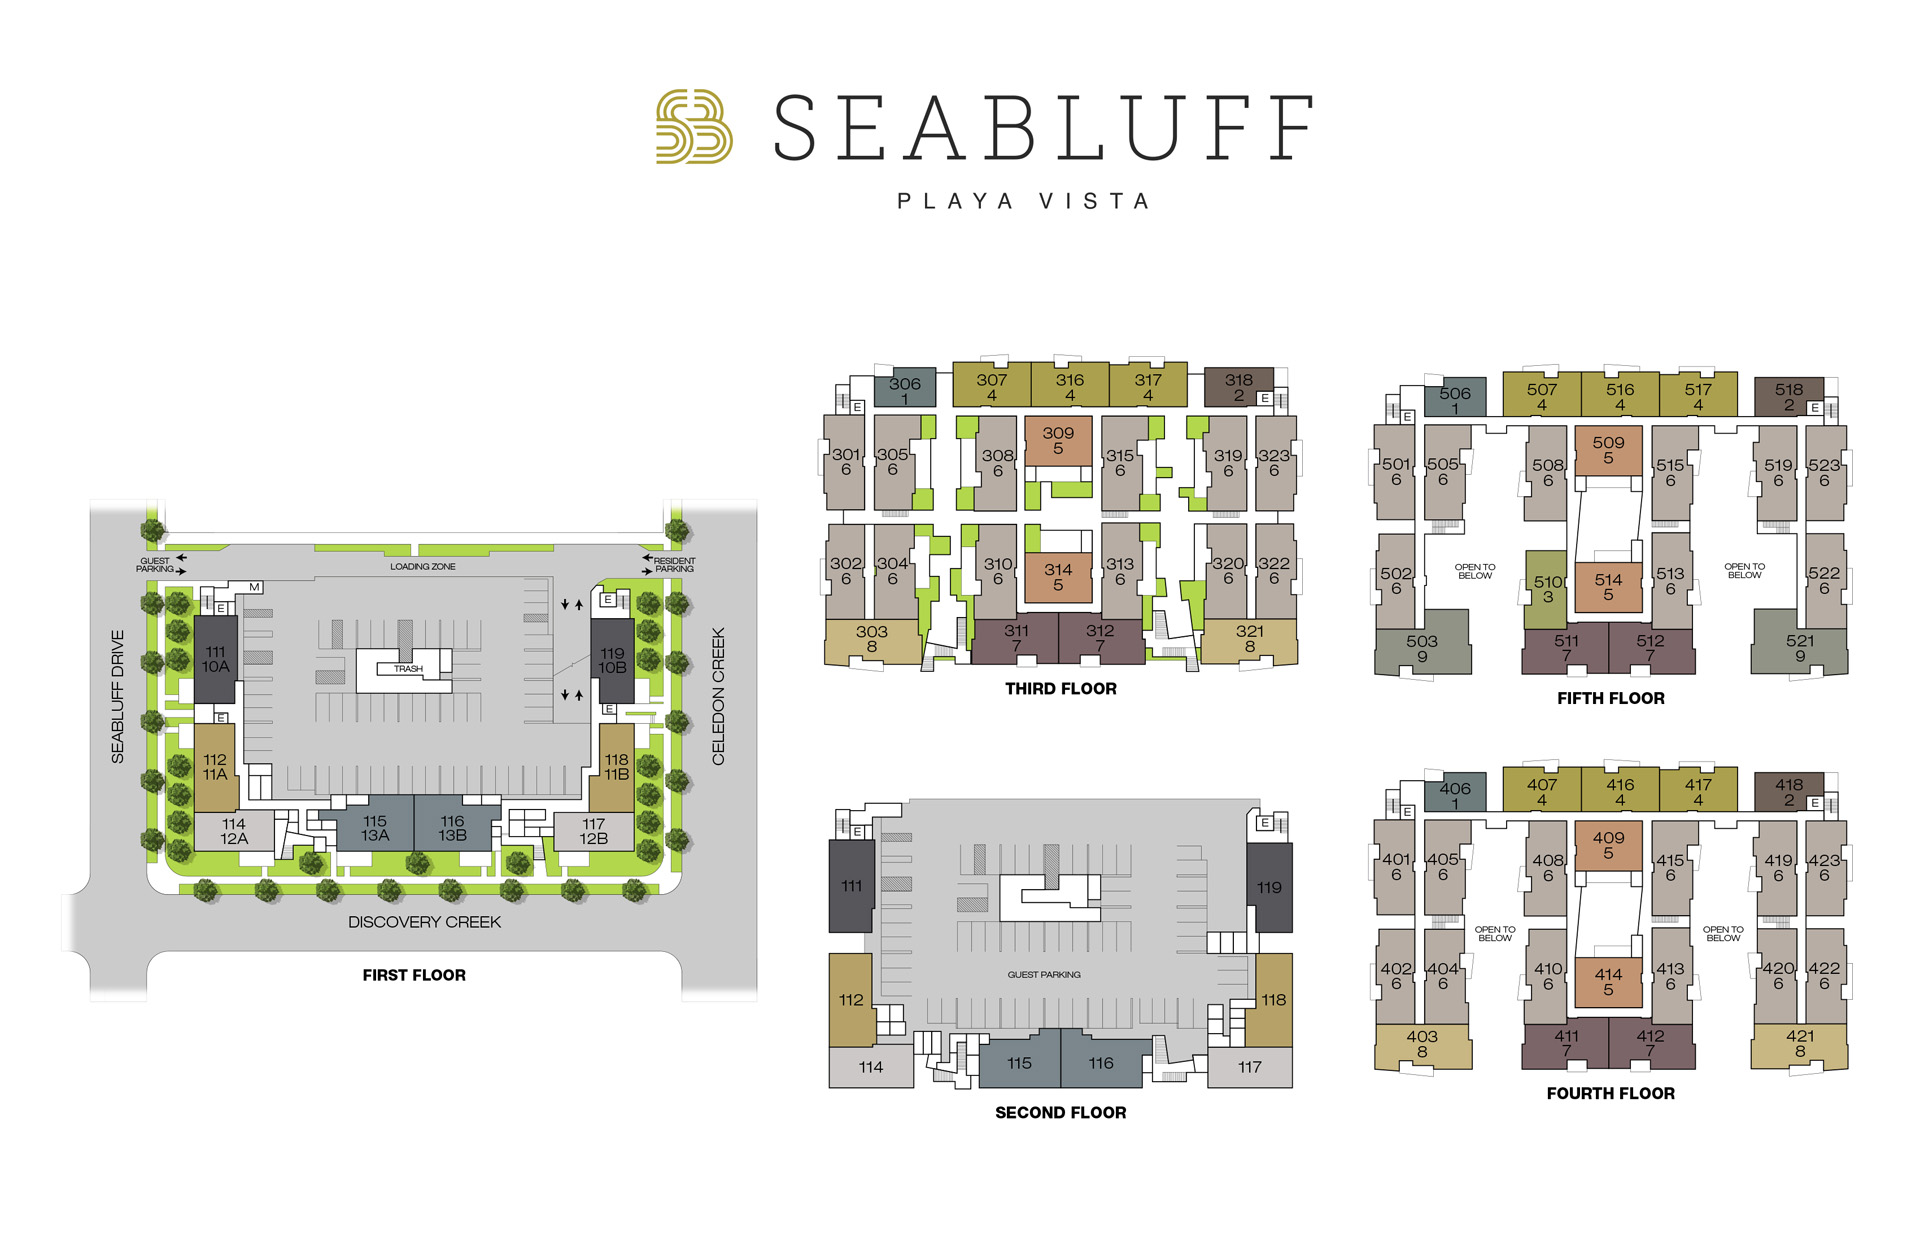 Seabluff Playa Vista Site Plan